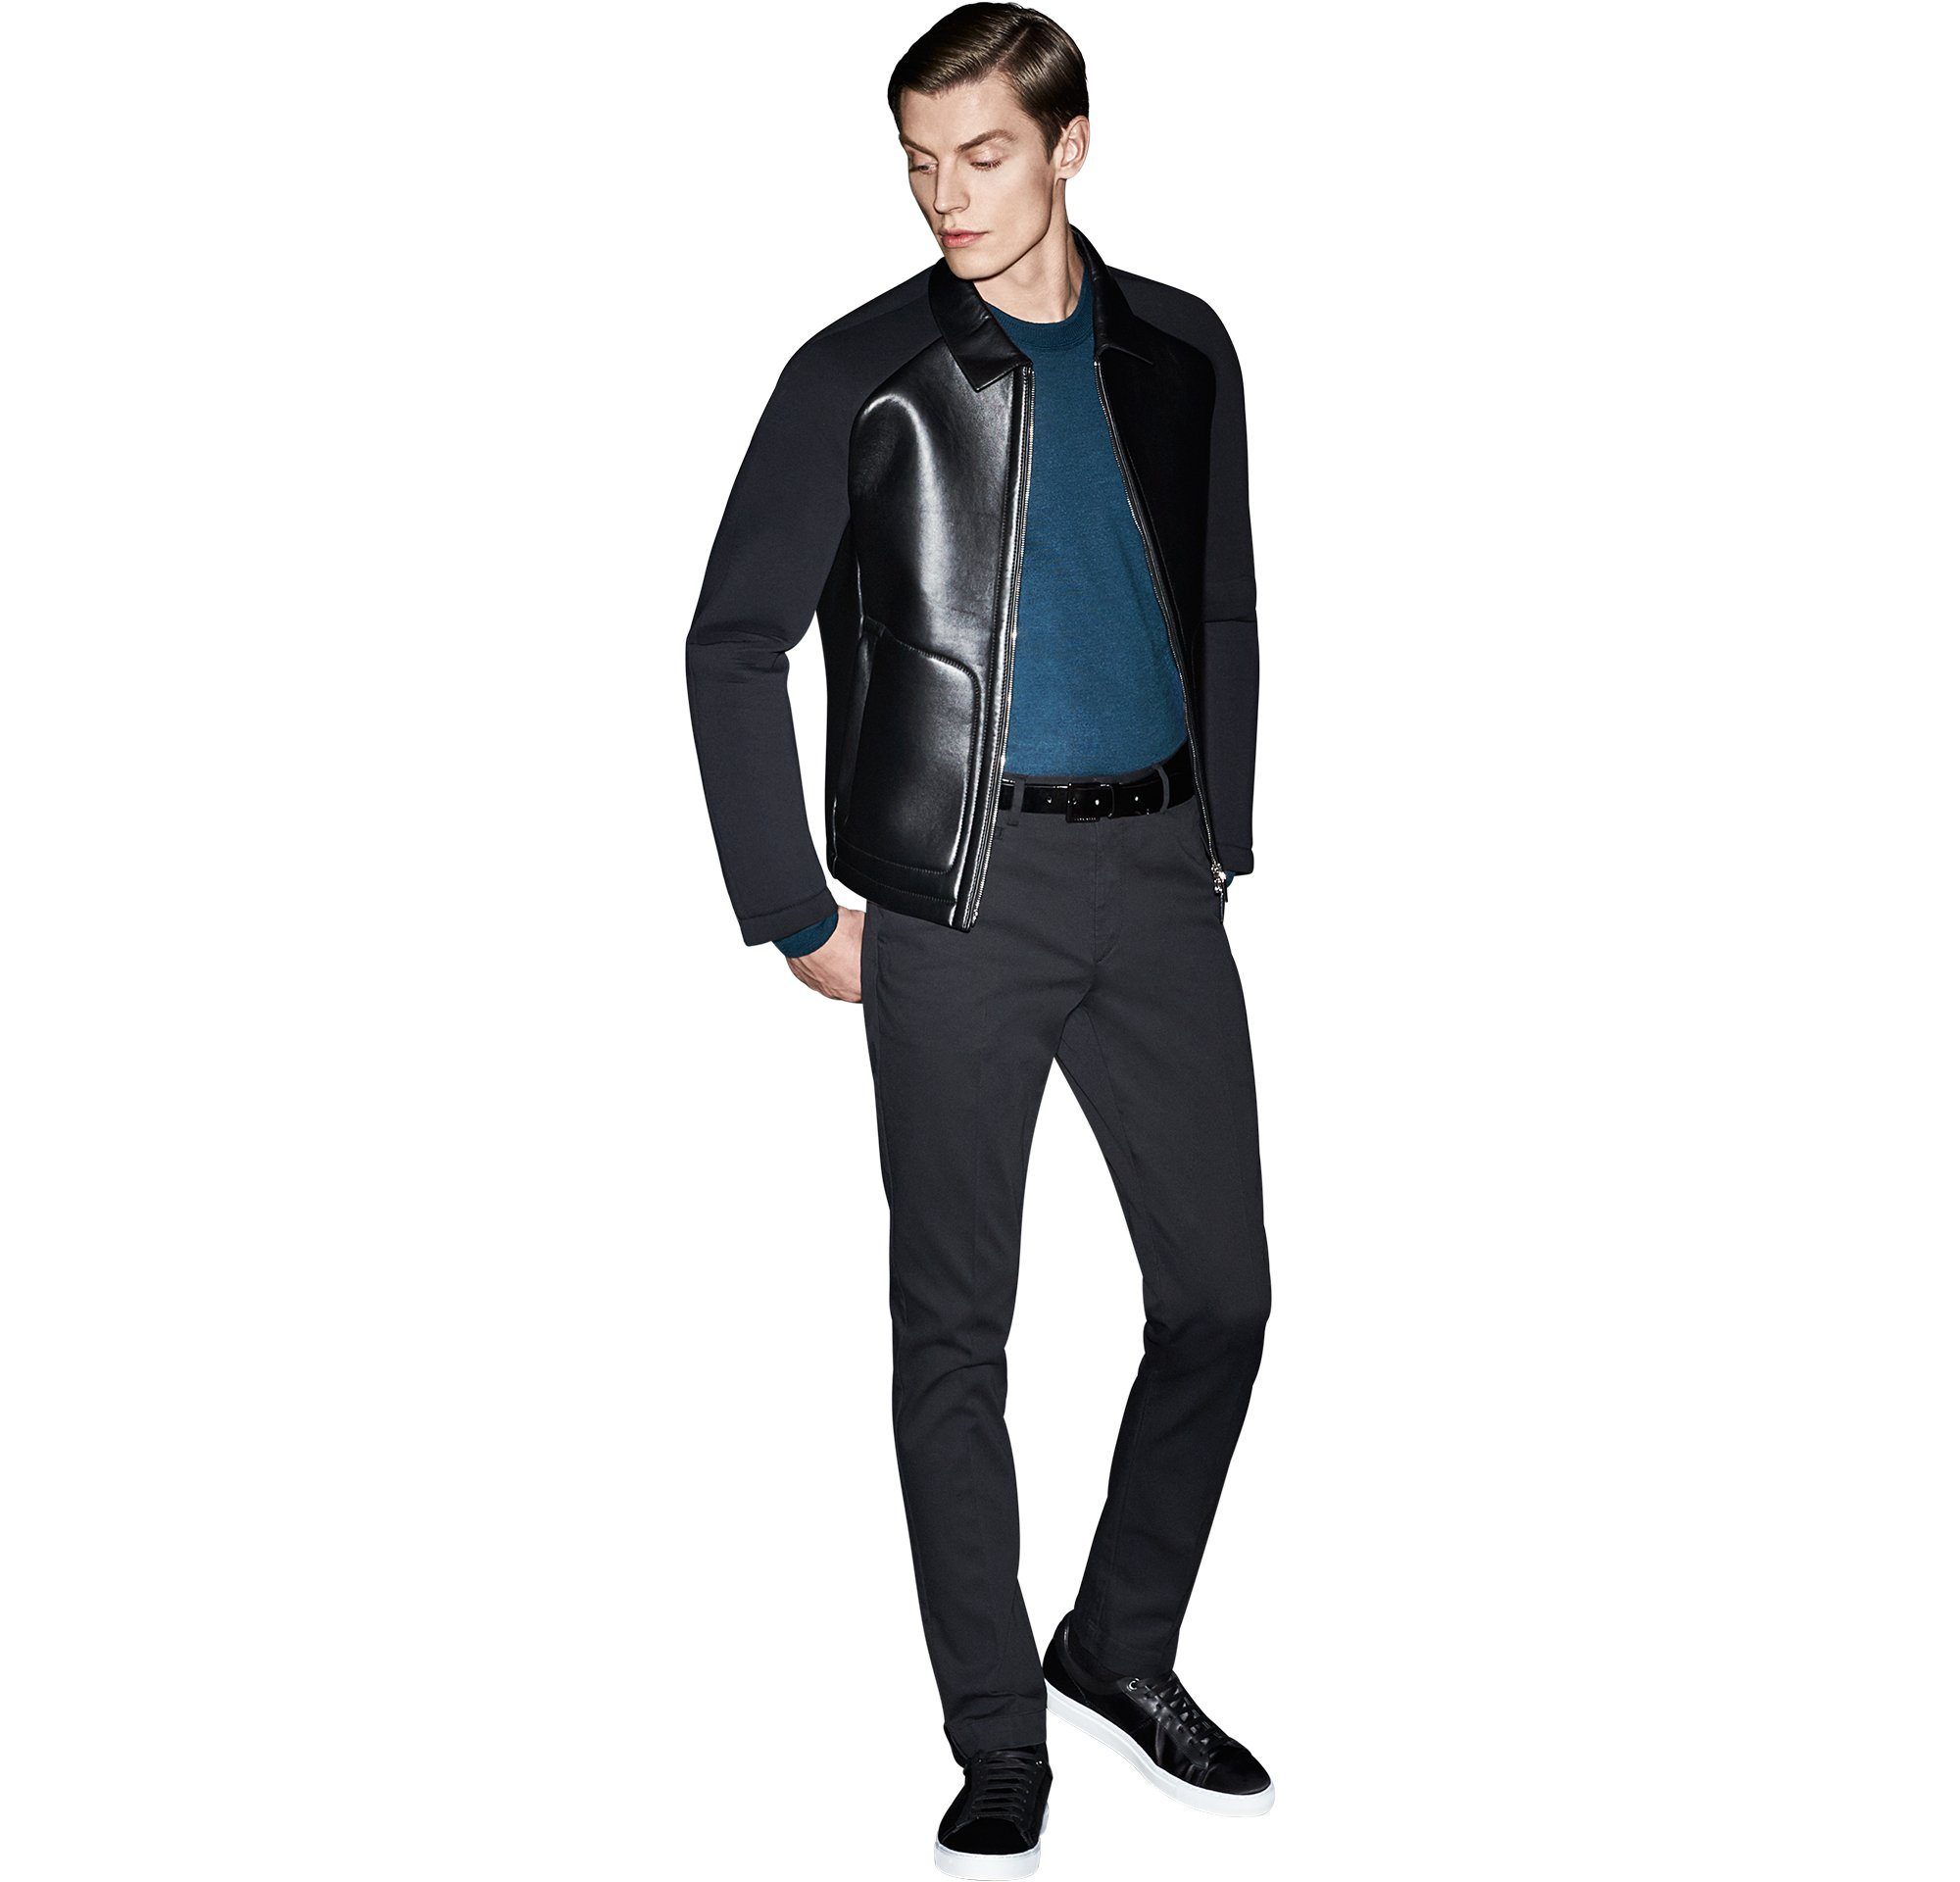 Black leather jacket over blue knitwear and black trousers with black shoes by BOSS